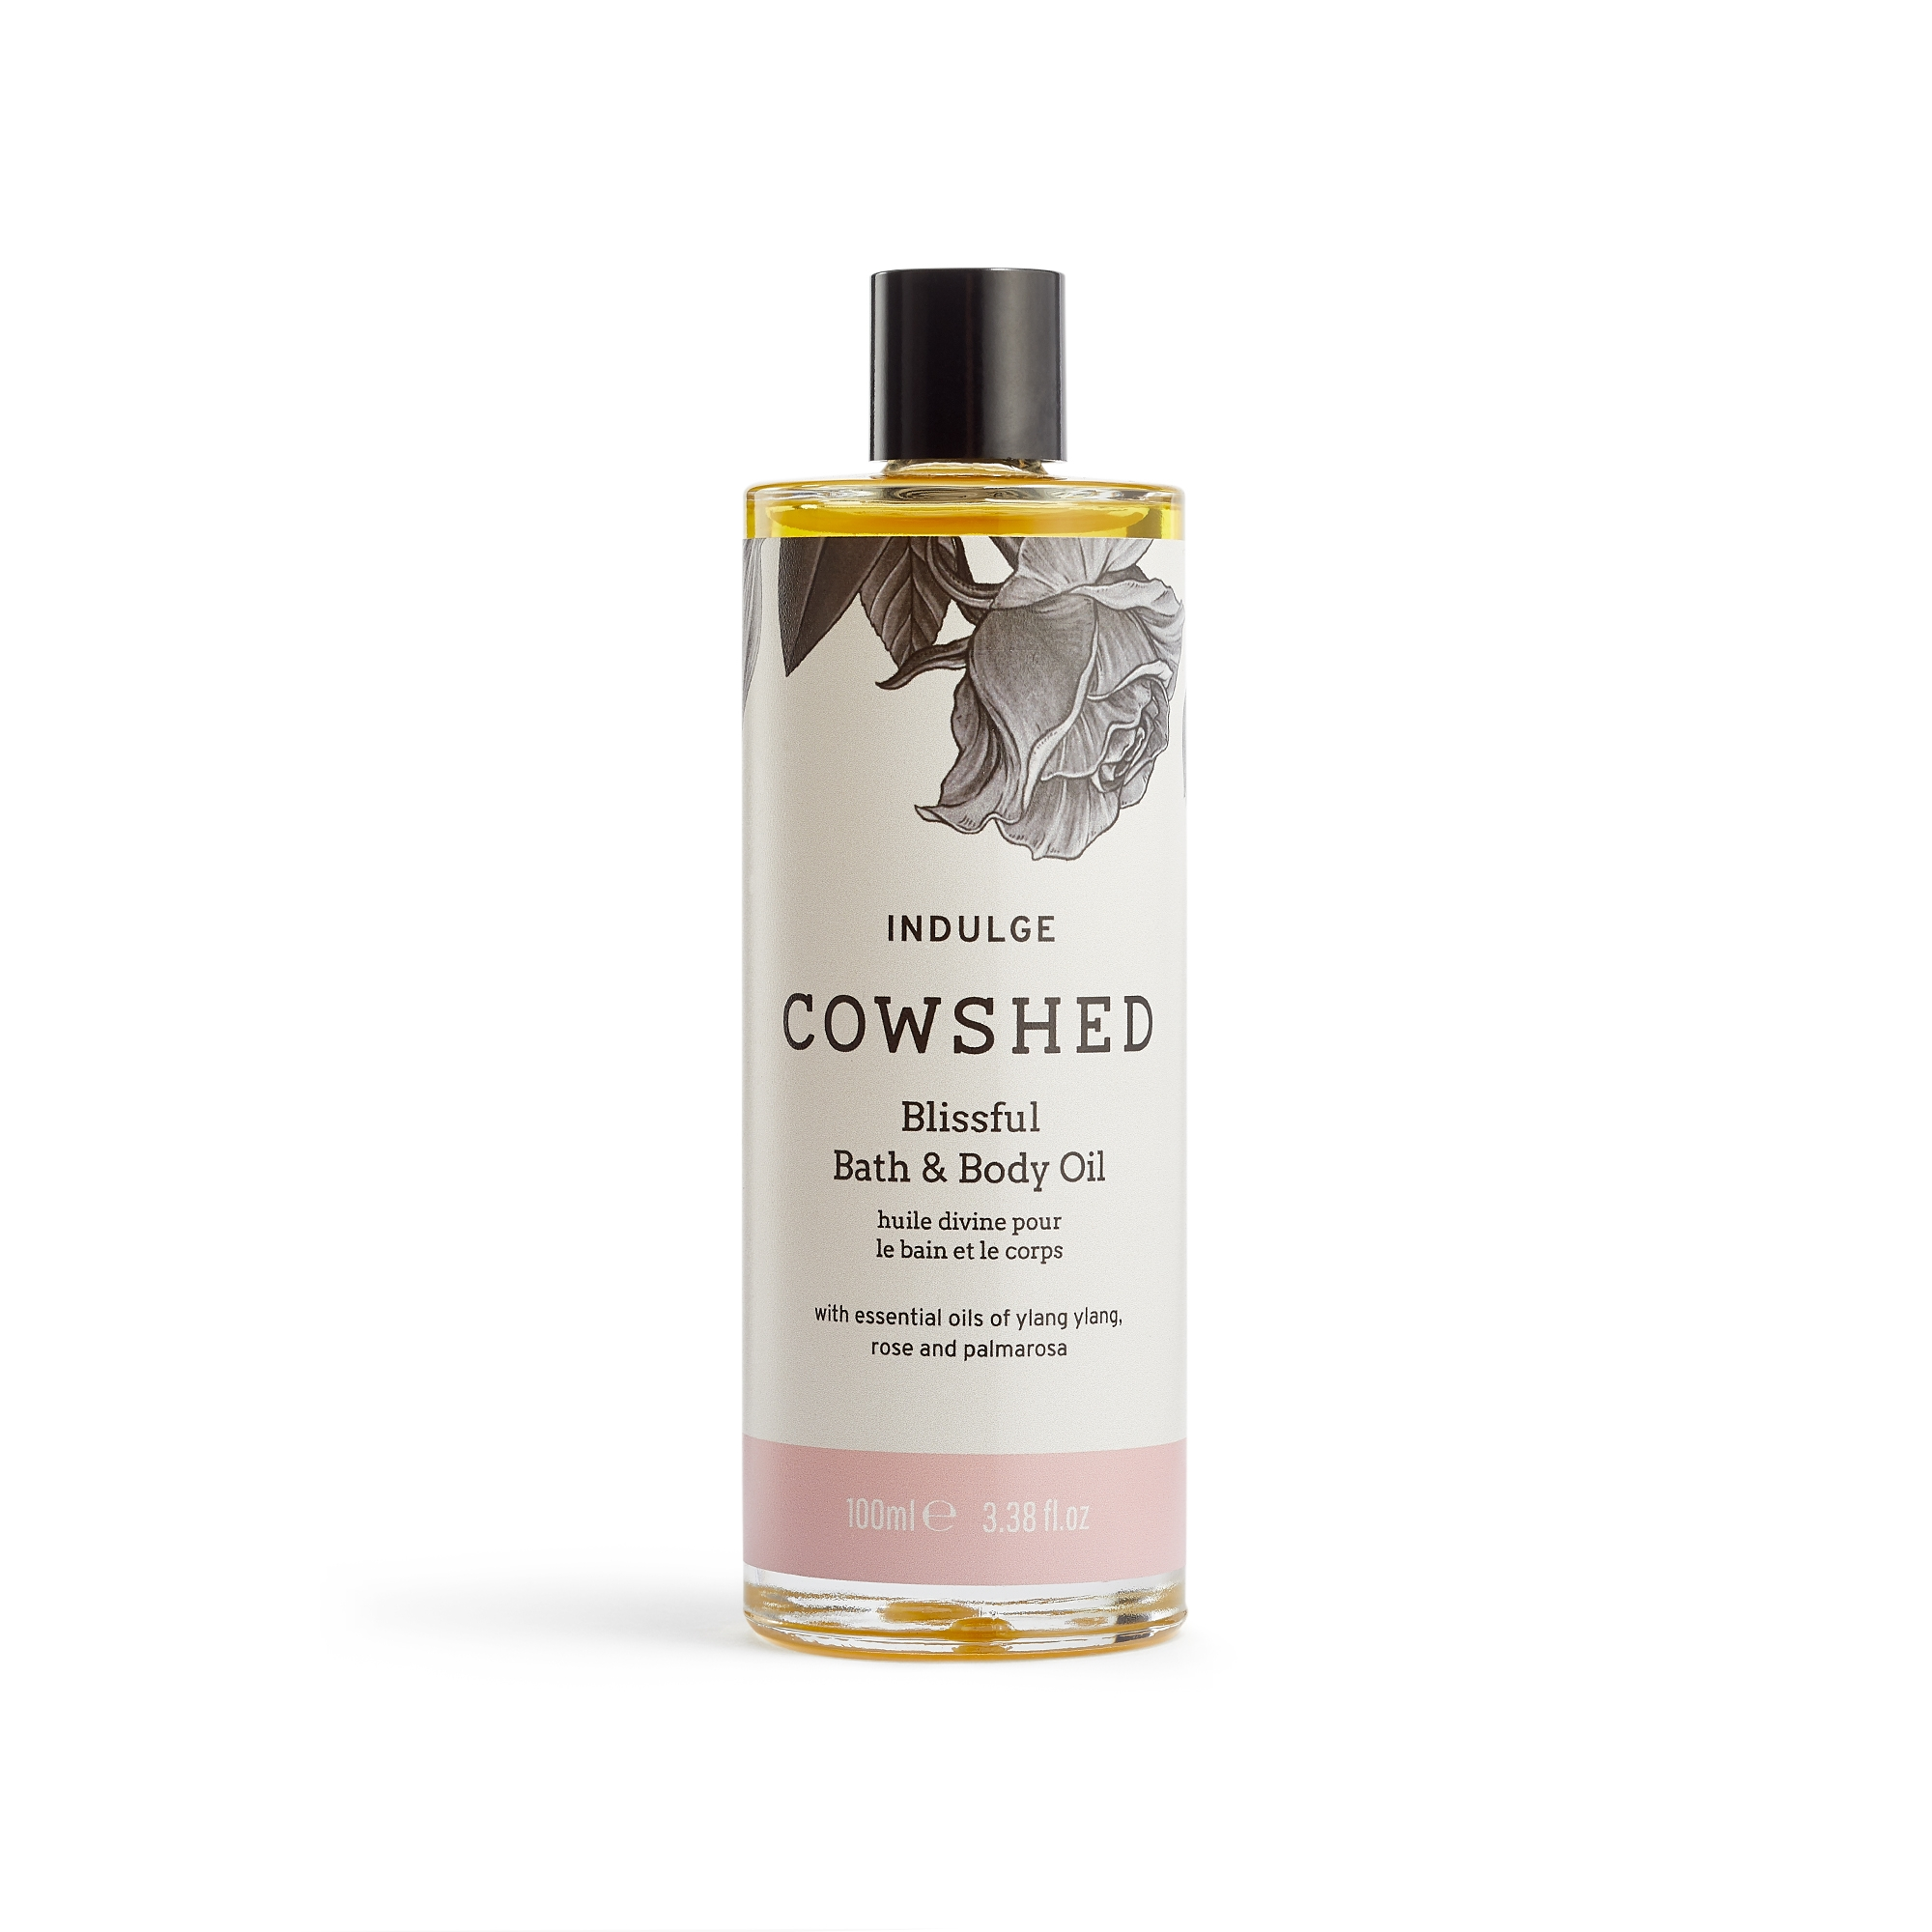 Cowshed INDULGE BLISSFUL Bath & Body Oil 100ml